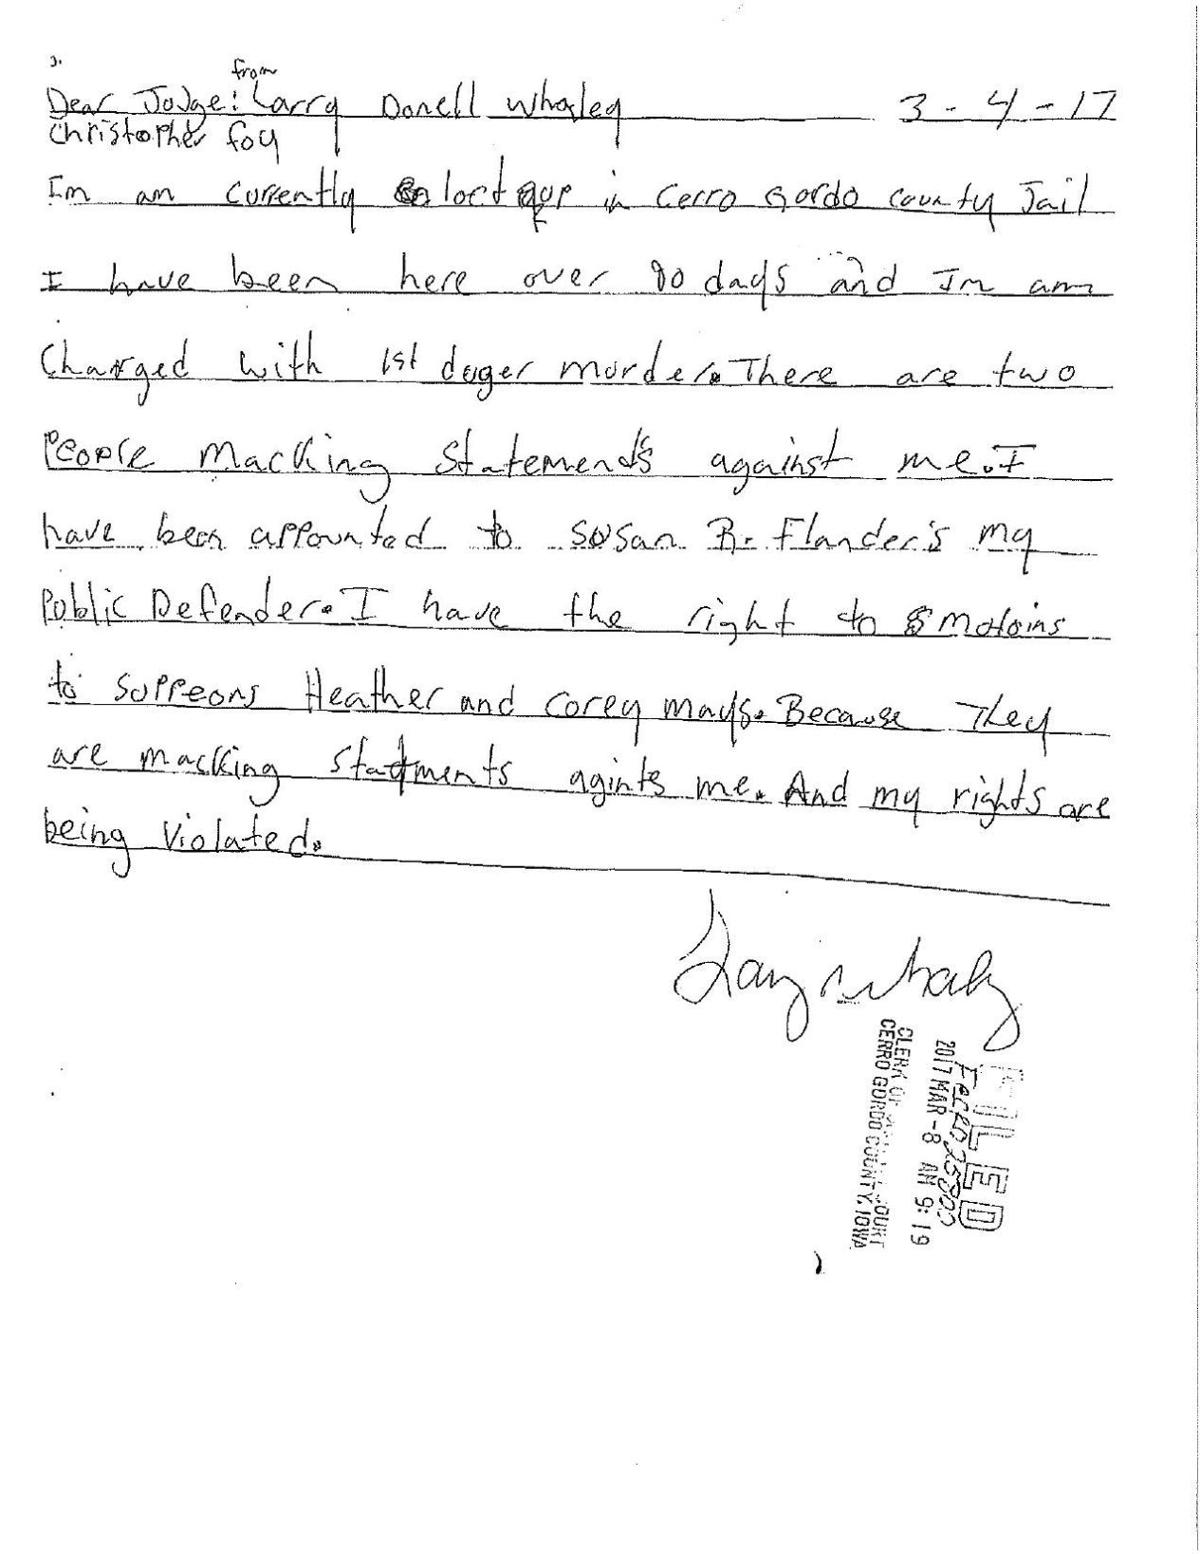 Click here to read homicide suspect Larry Whaley's letters to Judge Foy